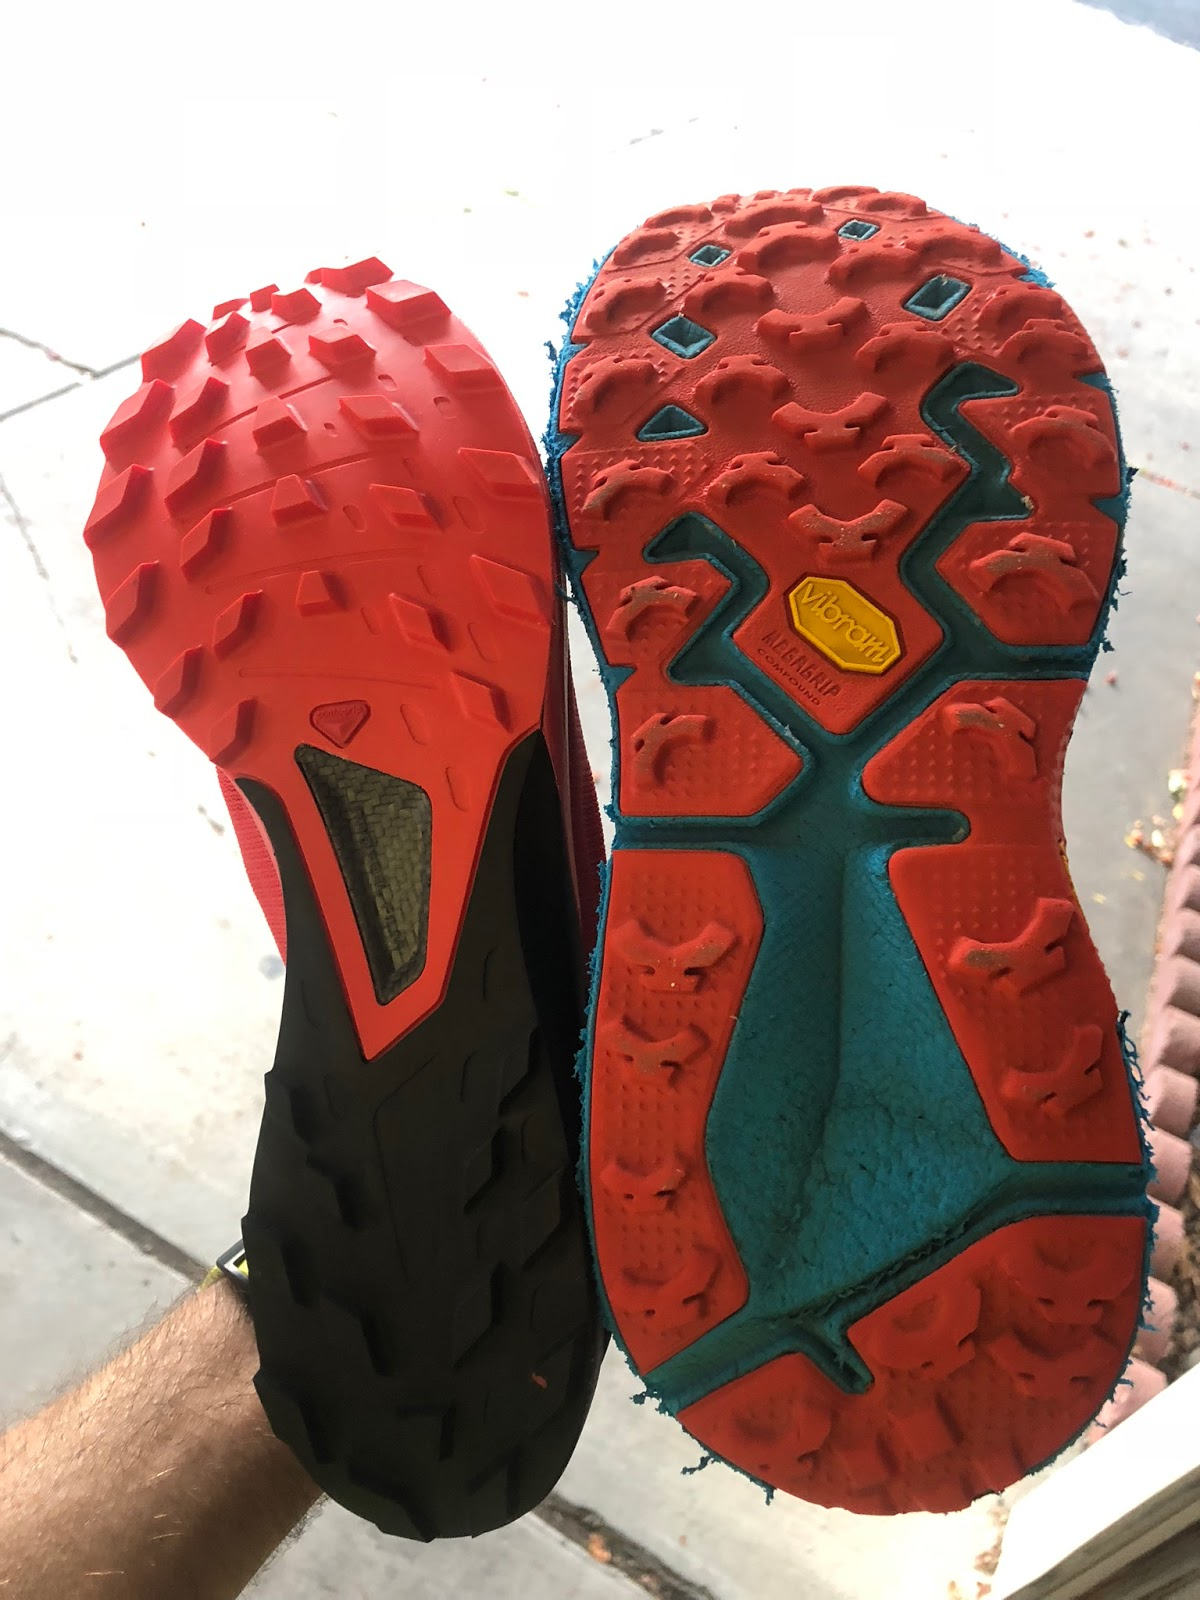 new product 8c2d7 142ef Road Trail Run: Salomon S/Lab Sense 7 SG Review - Ultralight ...